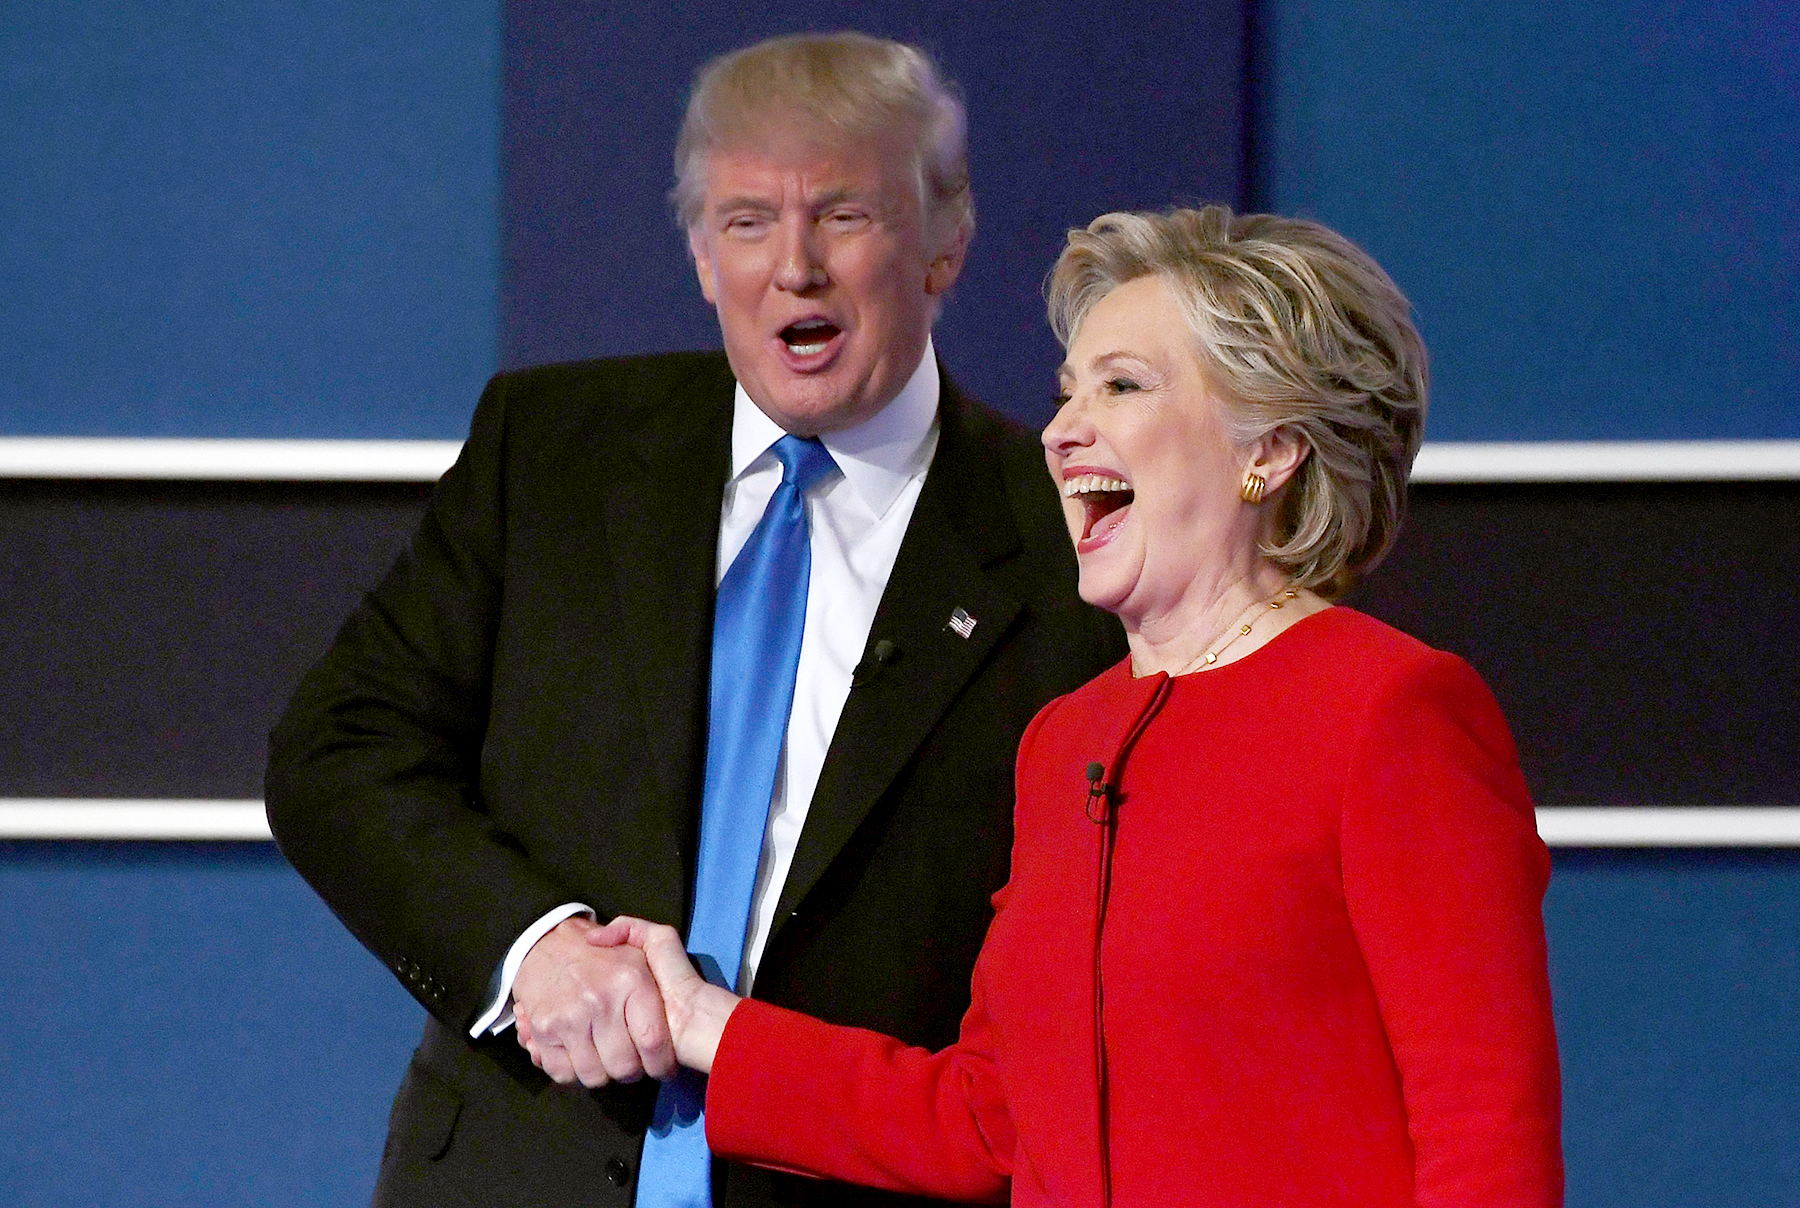 Hillary Clinton shakes hands with Donald Trump after the first presidential debate at Hofstra University in Hempstead, New York, on September 26, 2016.